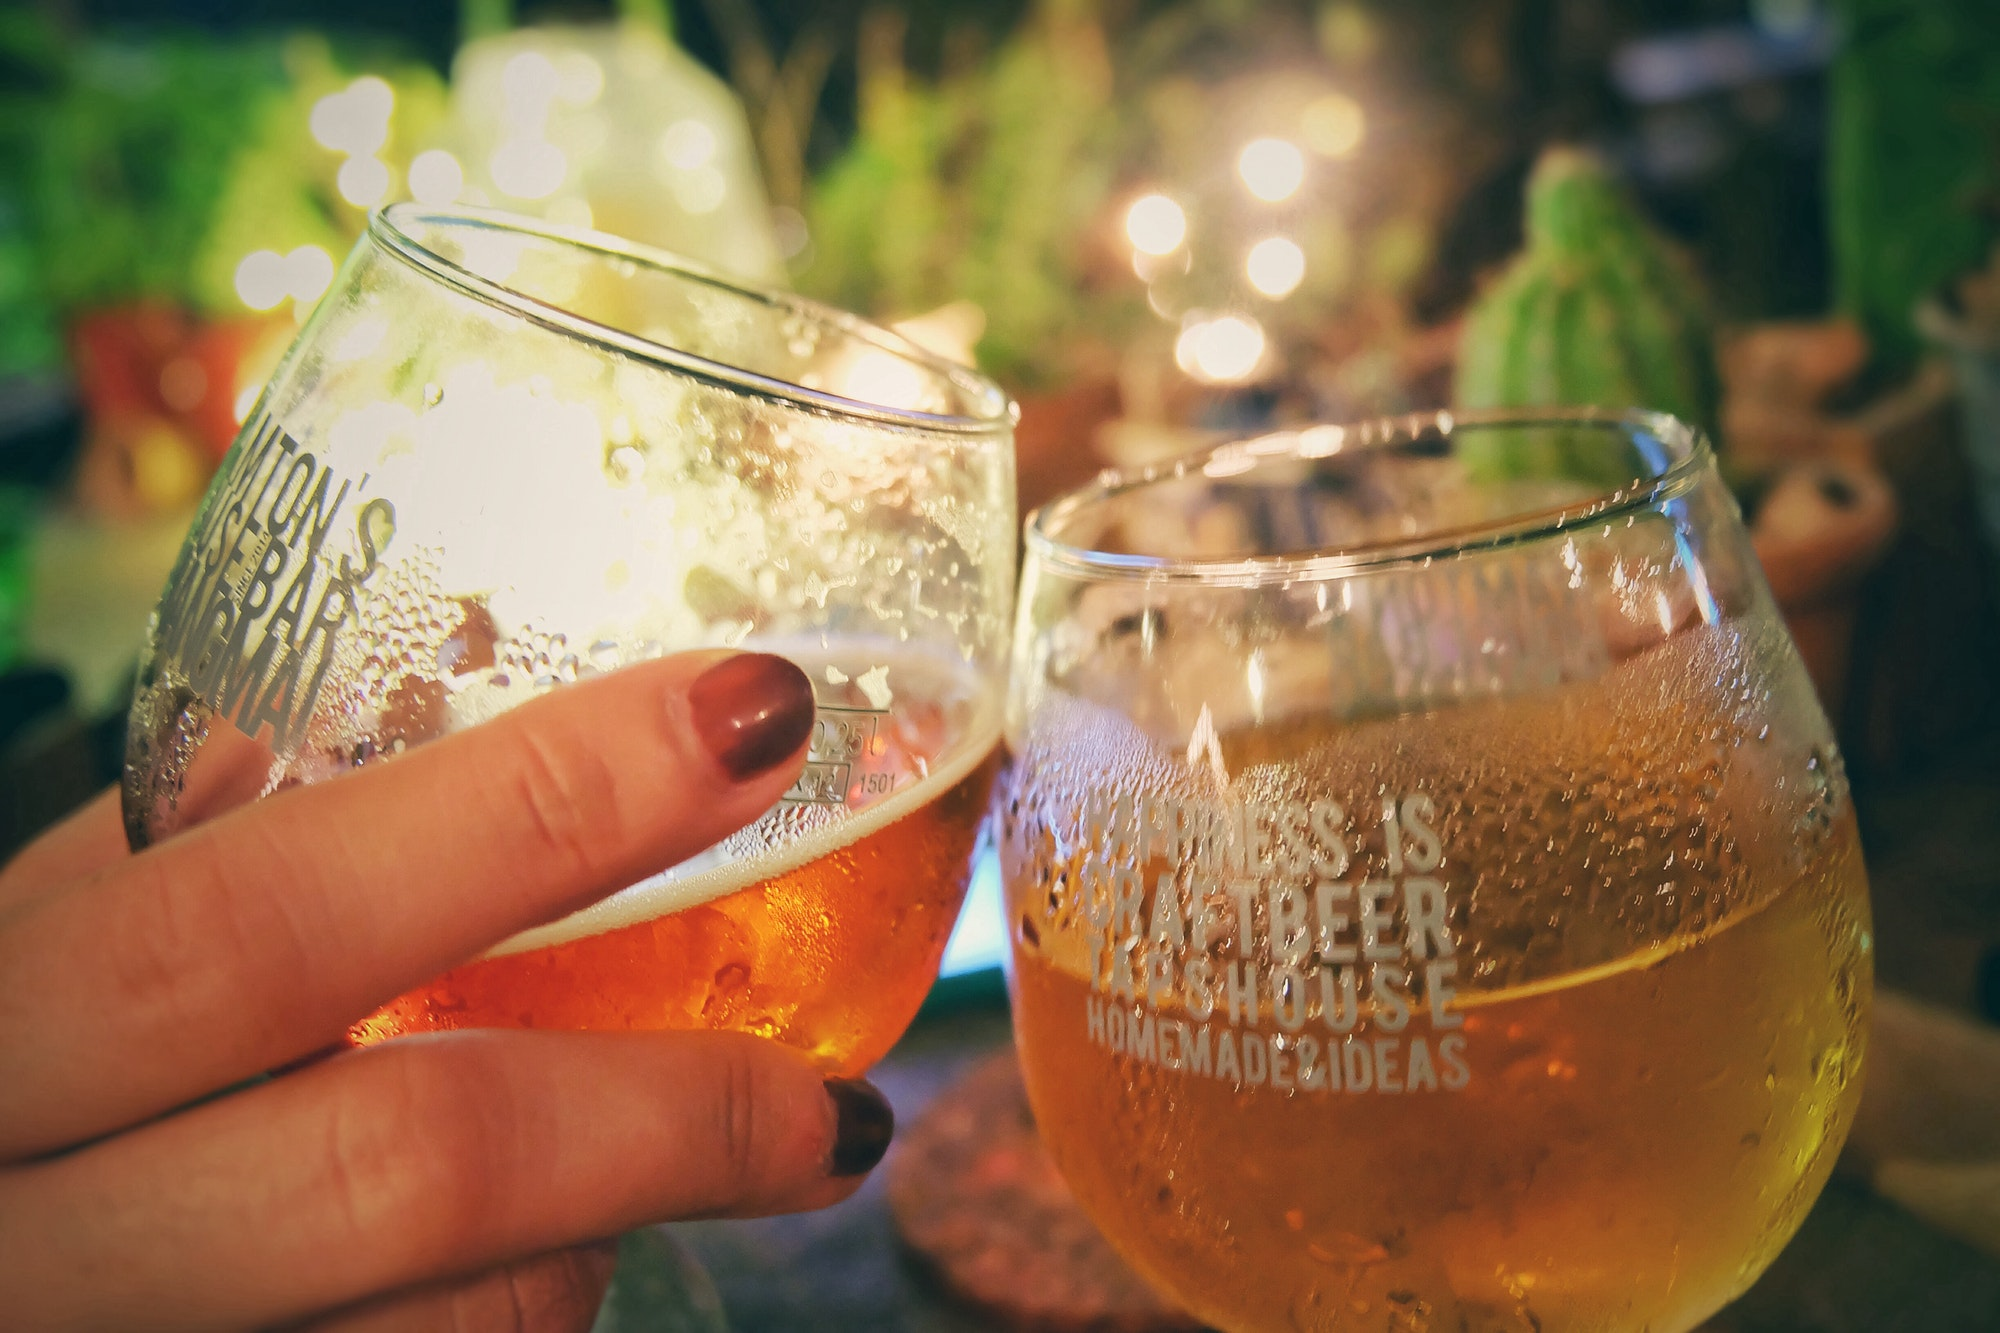 Cheers beer party night light background